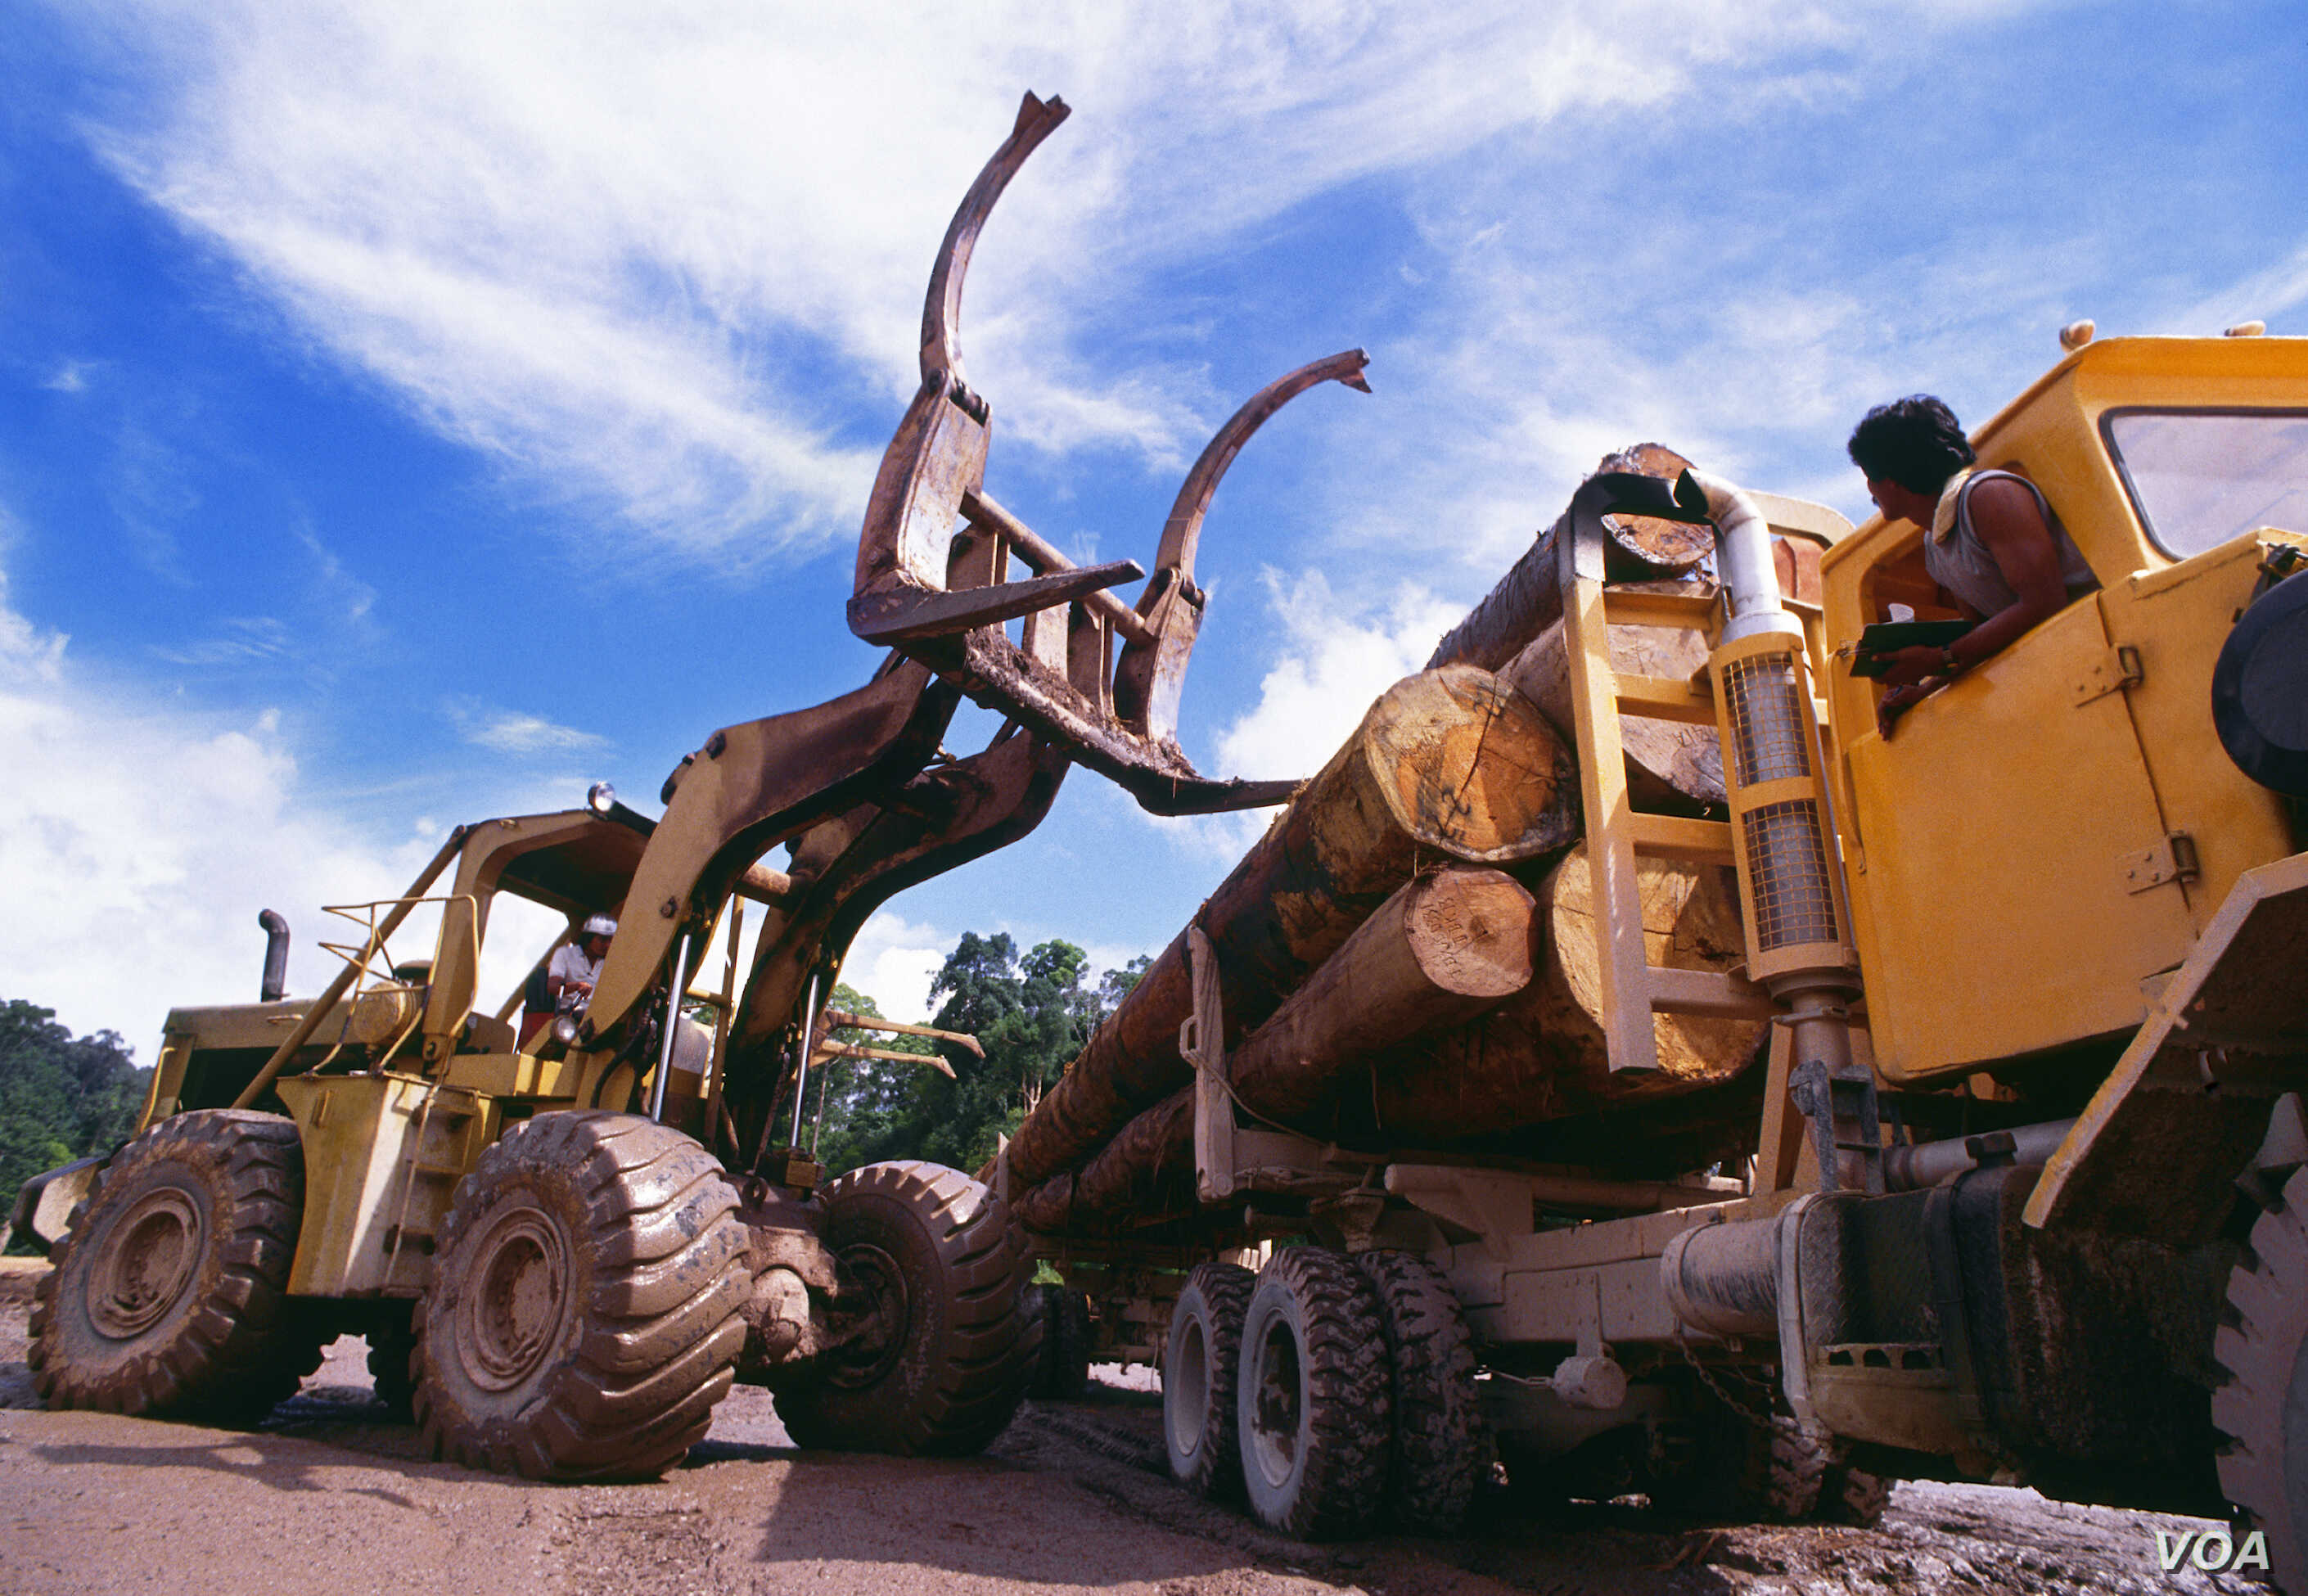 Organized crime is estimated to be involved in nearly 30% of global logging production. (UNEP)